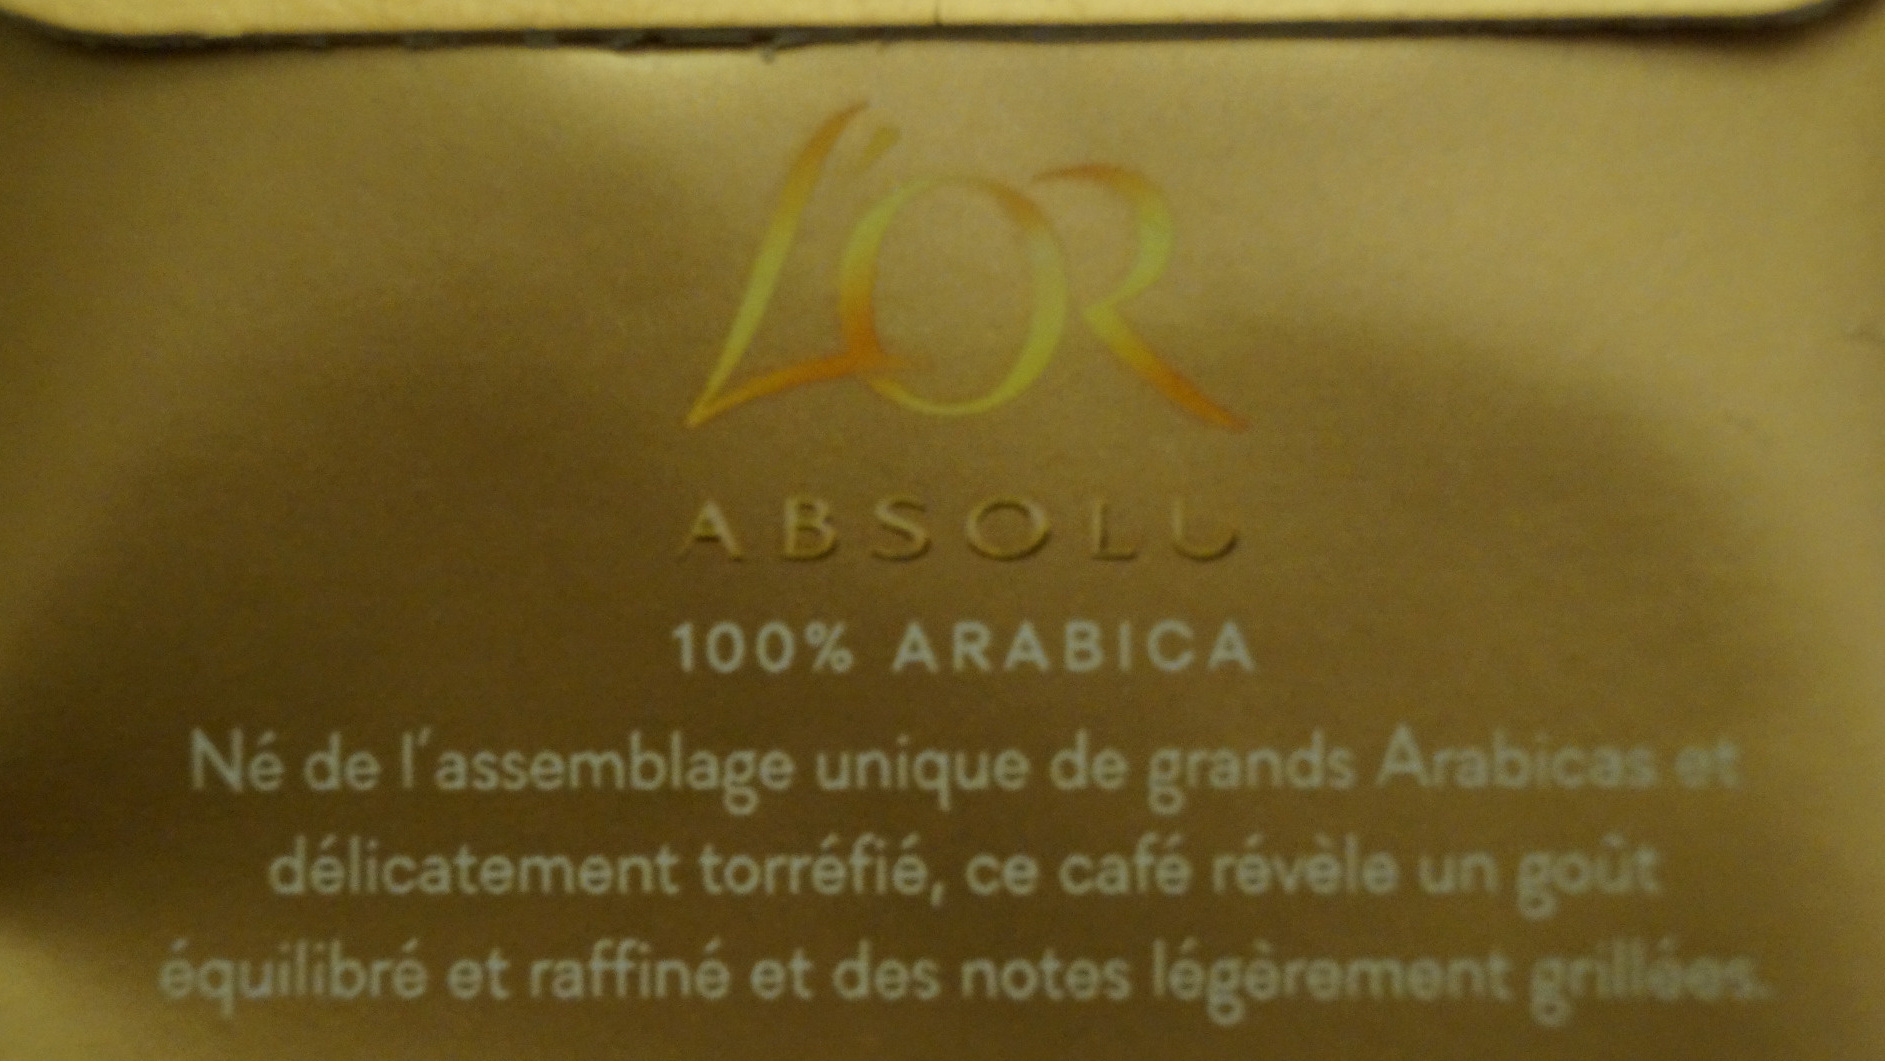 L'Or Absolu - Secret d'arôme - Ingrediënten